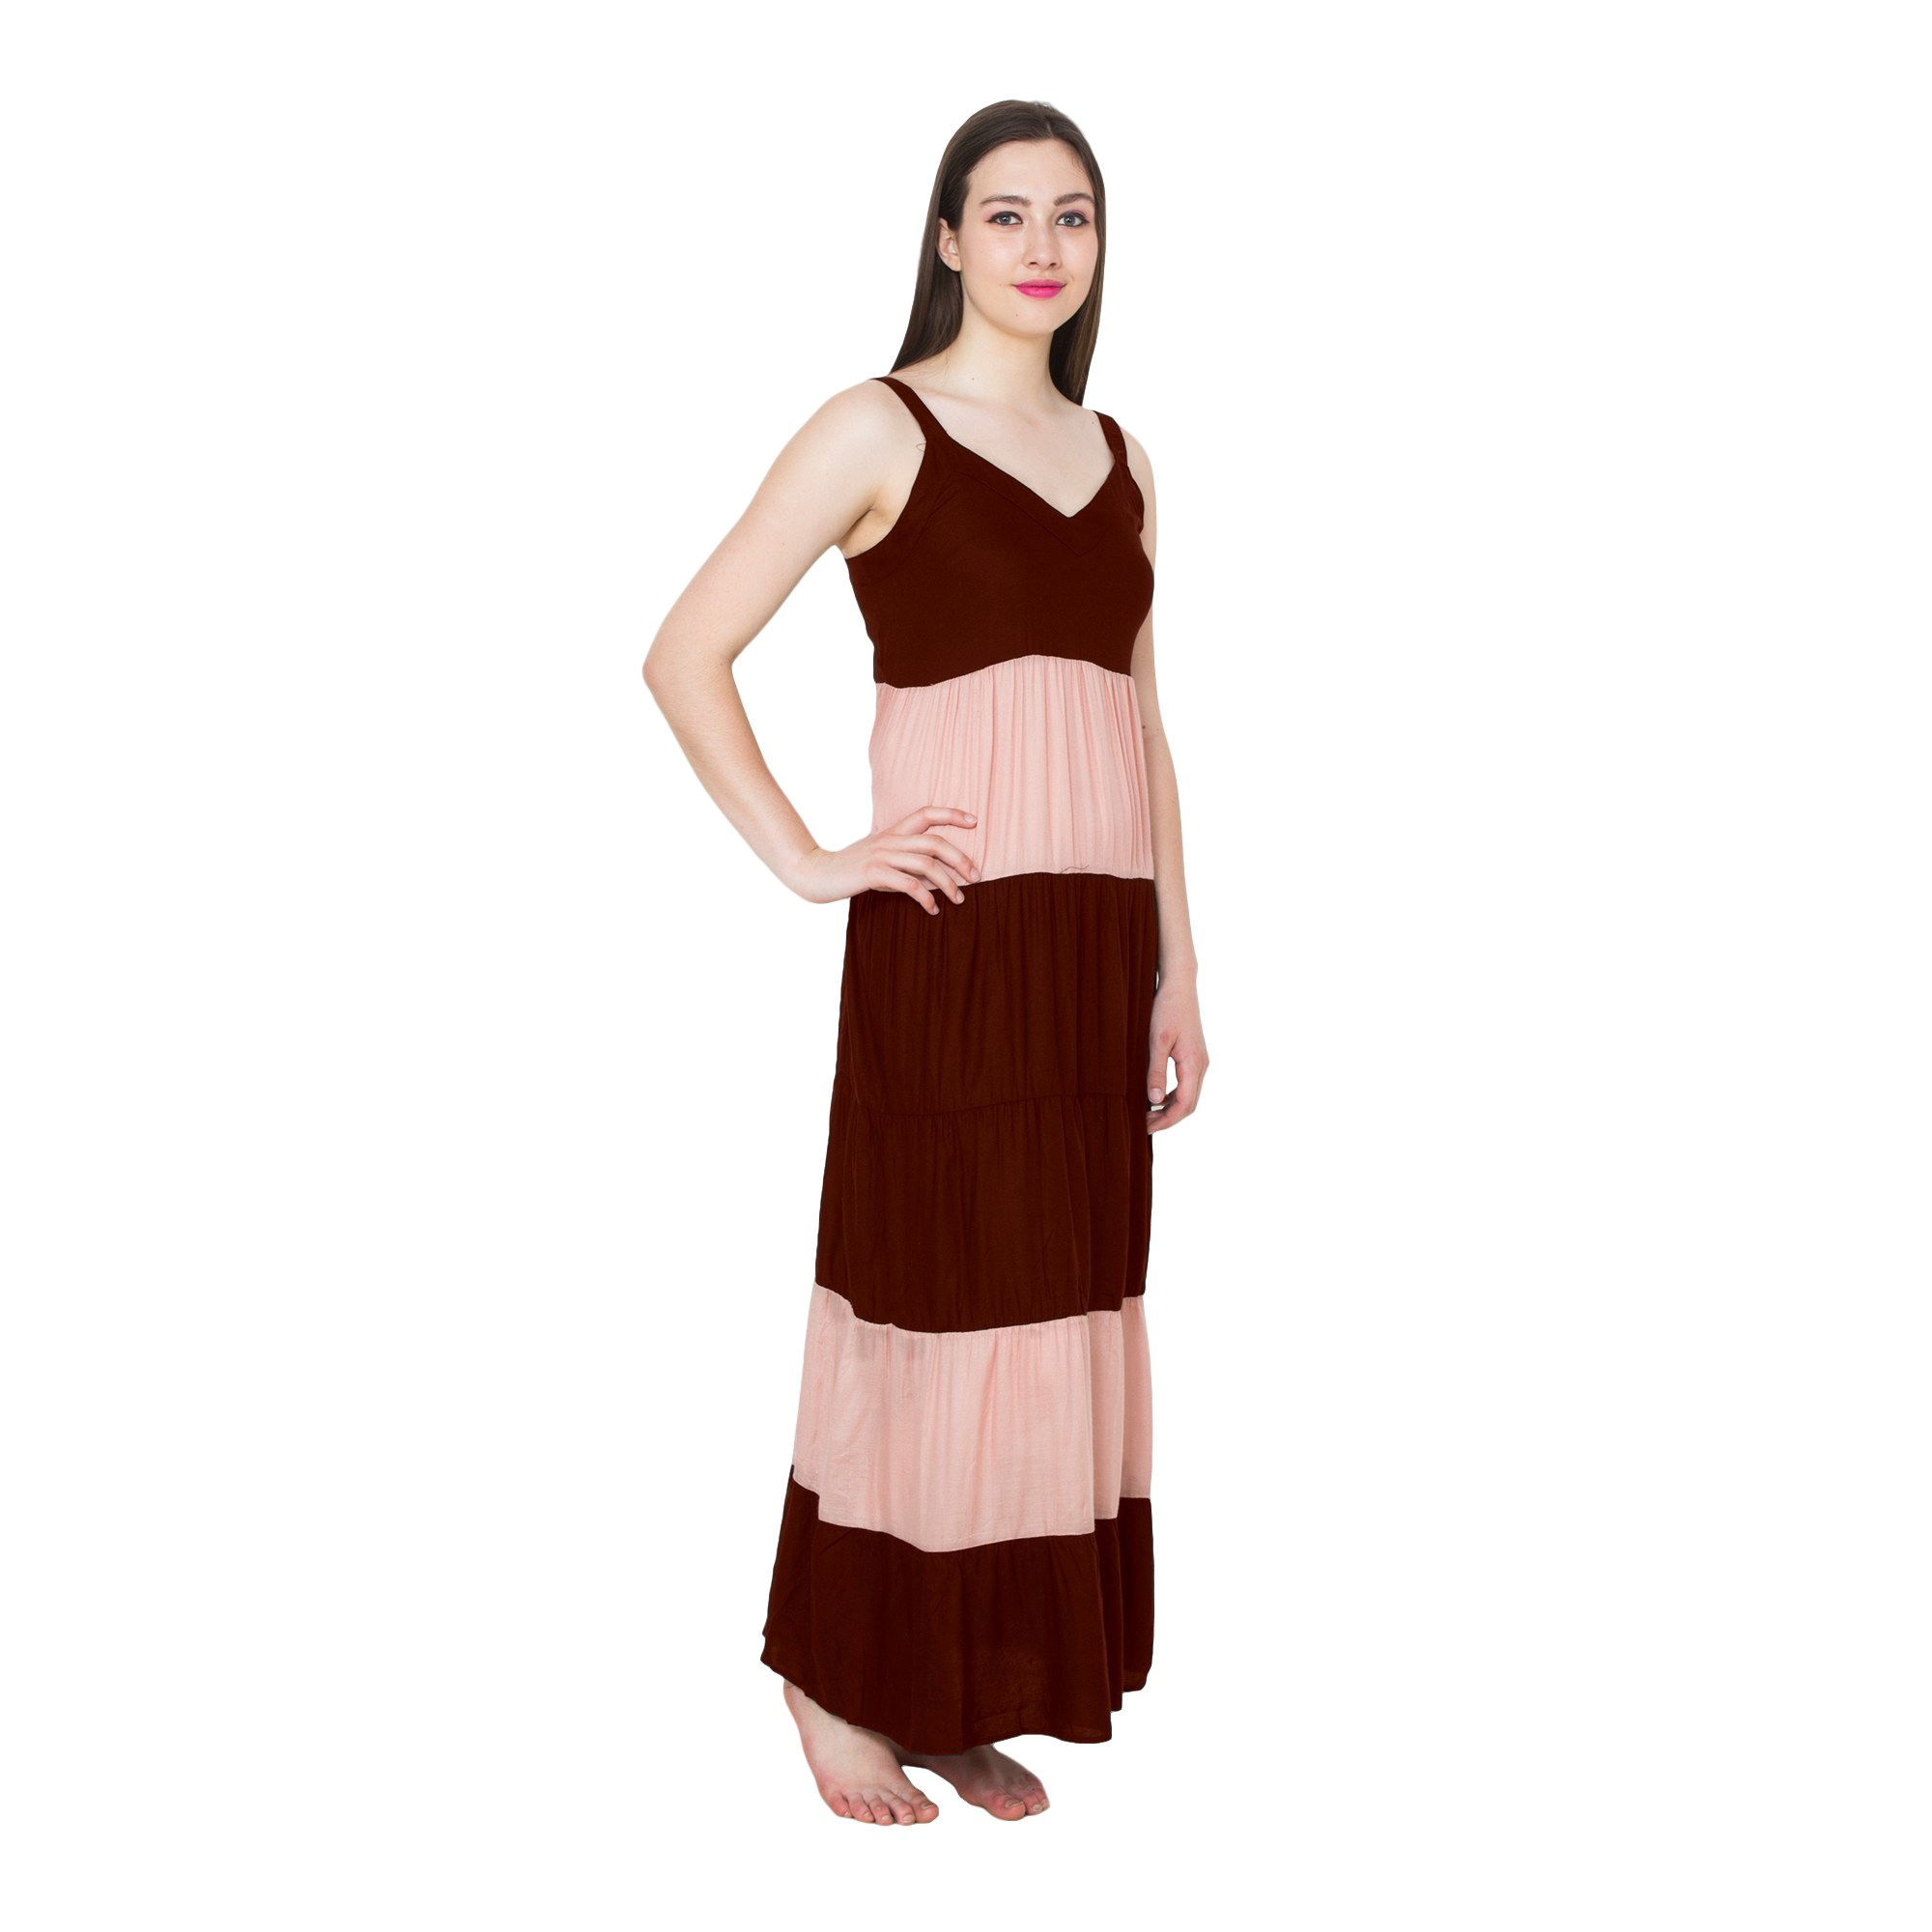 Spaghetti Strap Pleated Frilled Nighty Dress Gown in Maroon:Peach